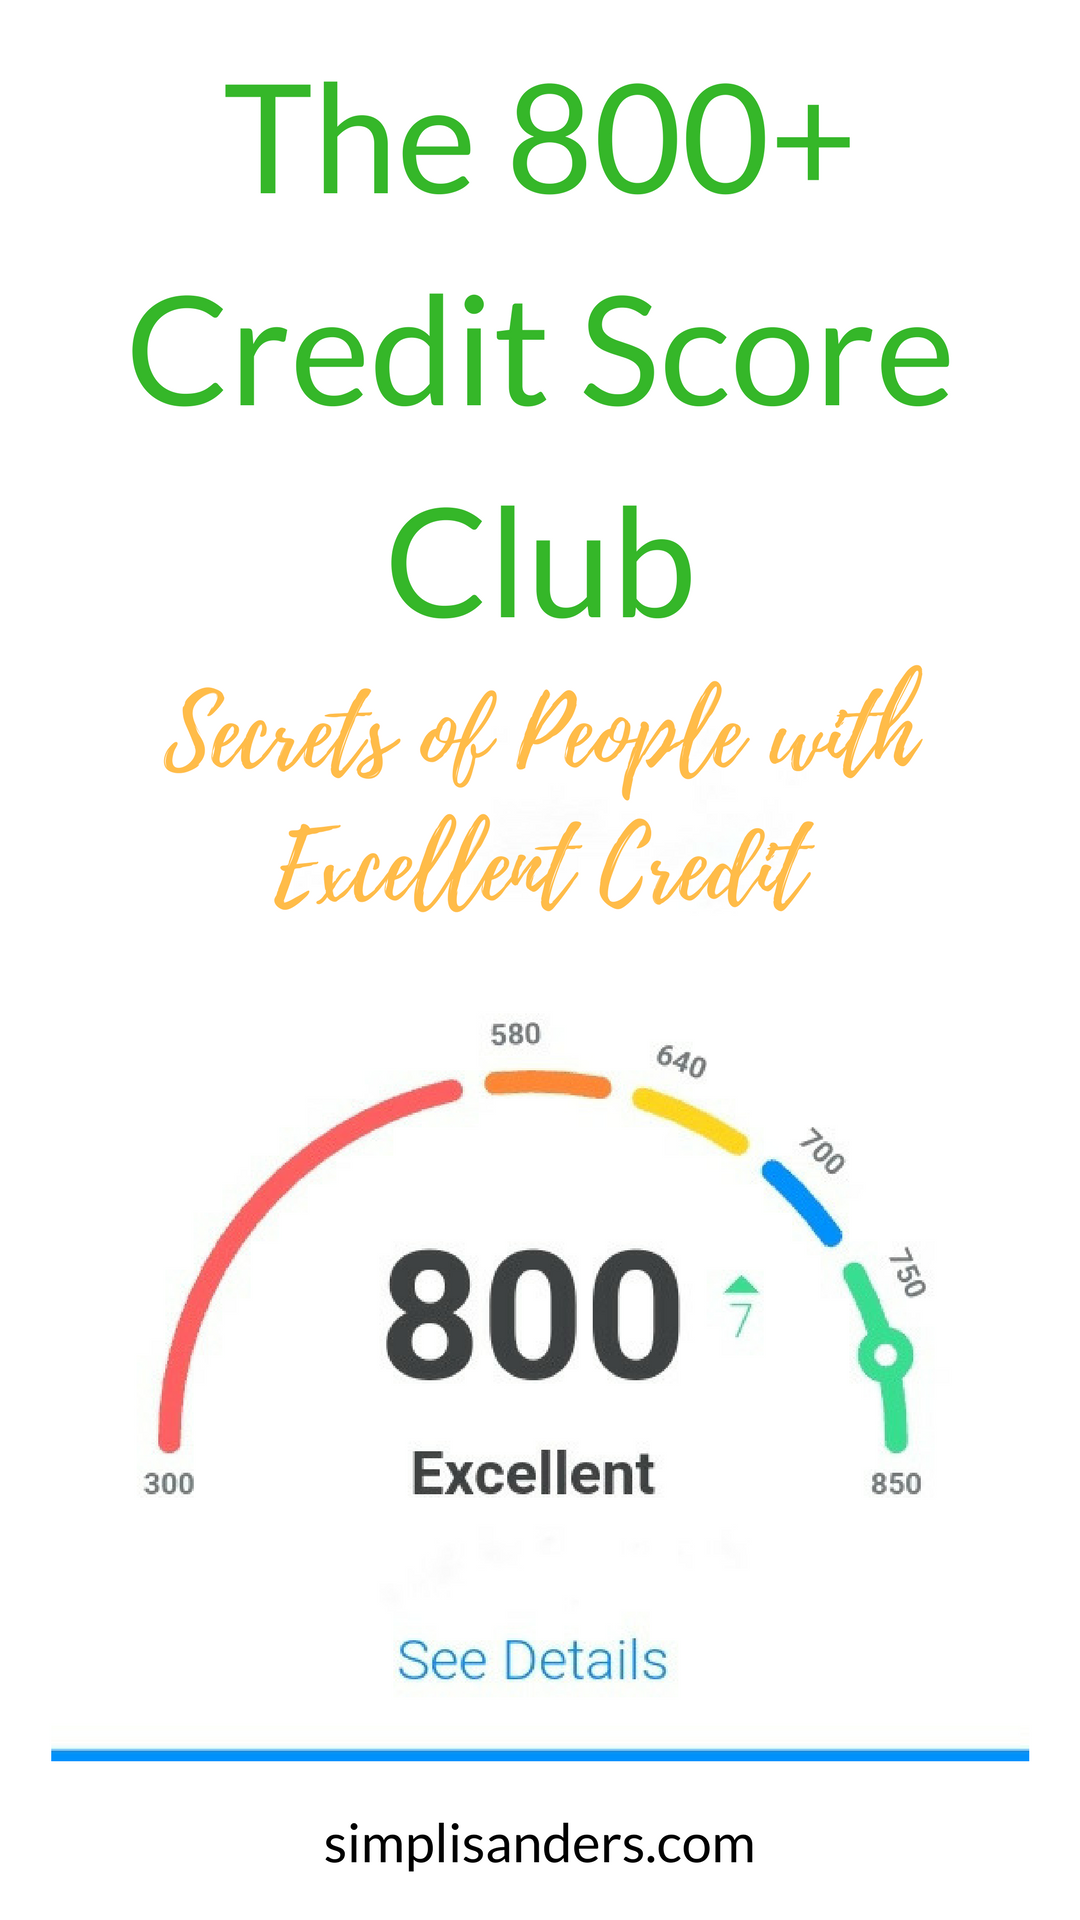 Good credit is nice, but excellent can get you the best perks around. Learn the secrets that people in the 800+ credit score club do to improve credit score. #improvecreditscore #howtogetexcellentcreditscore #howtoimprovecreditscore